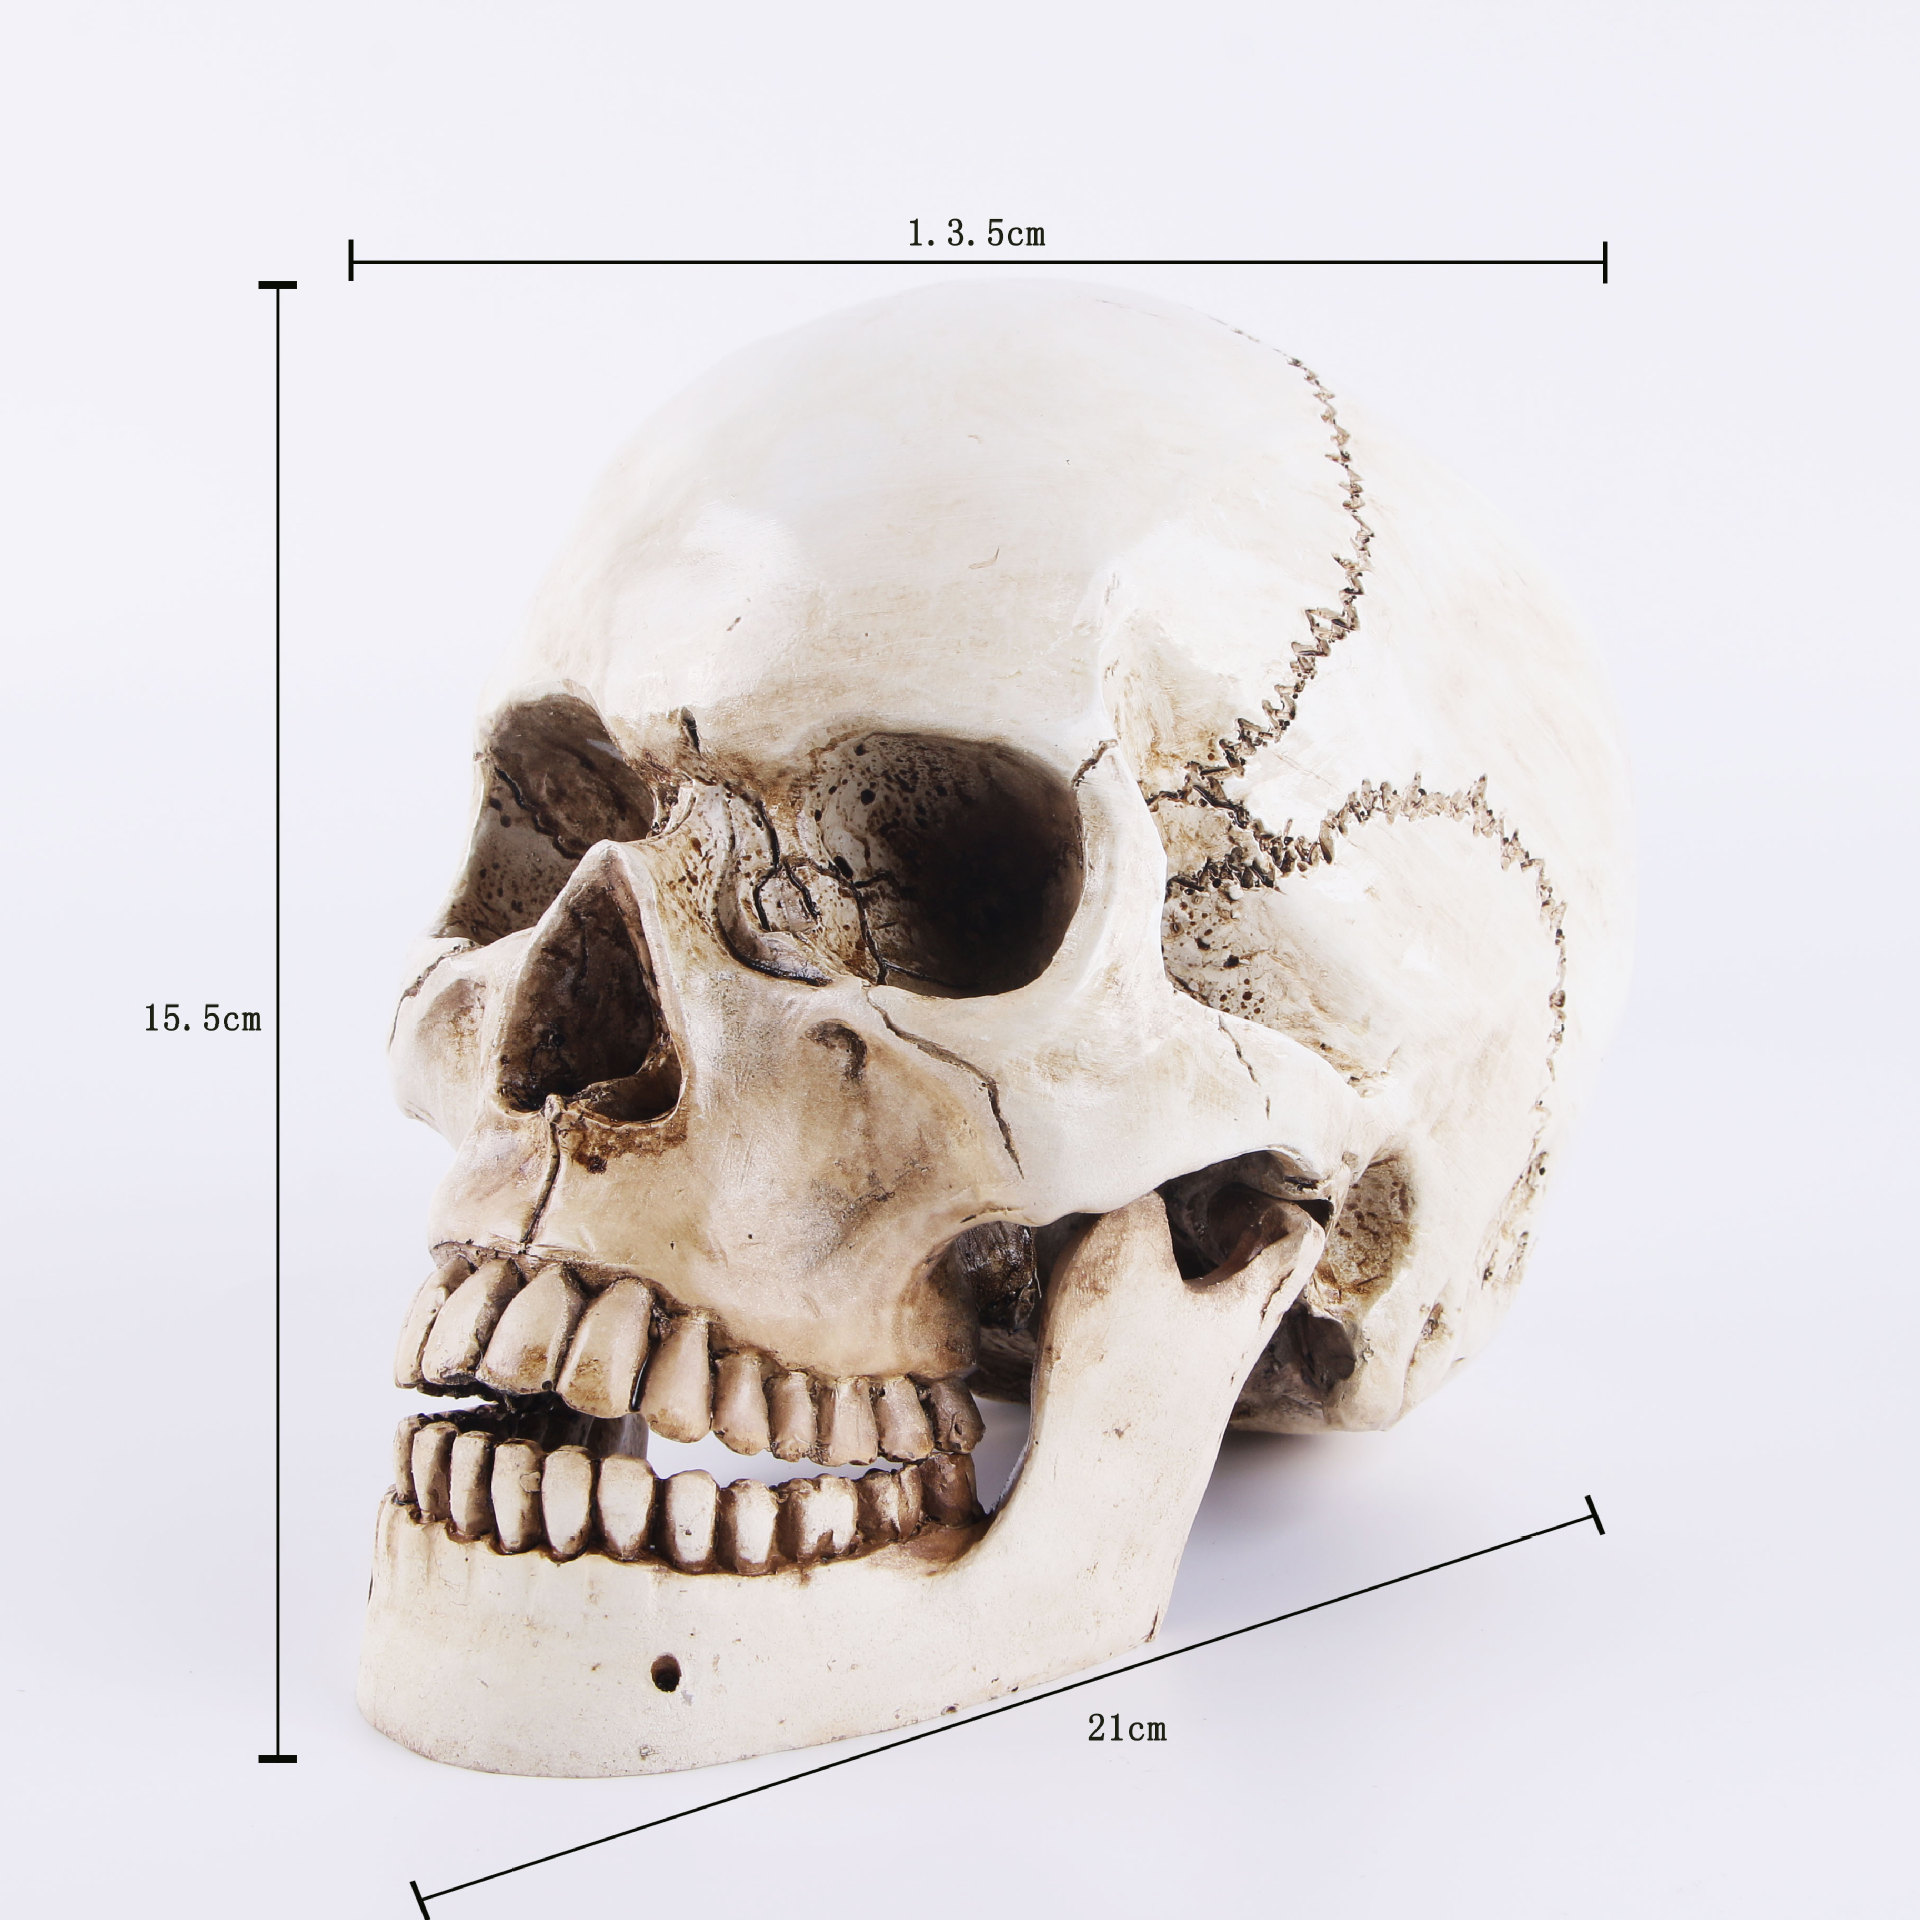 Skull Mold Medical Model Lifesize 1 1 Halloween Home Decoration Decorative Craft Skull Statue Gift in Statues Sculptures from Home Garden